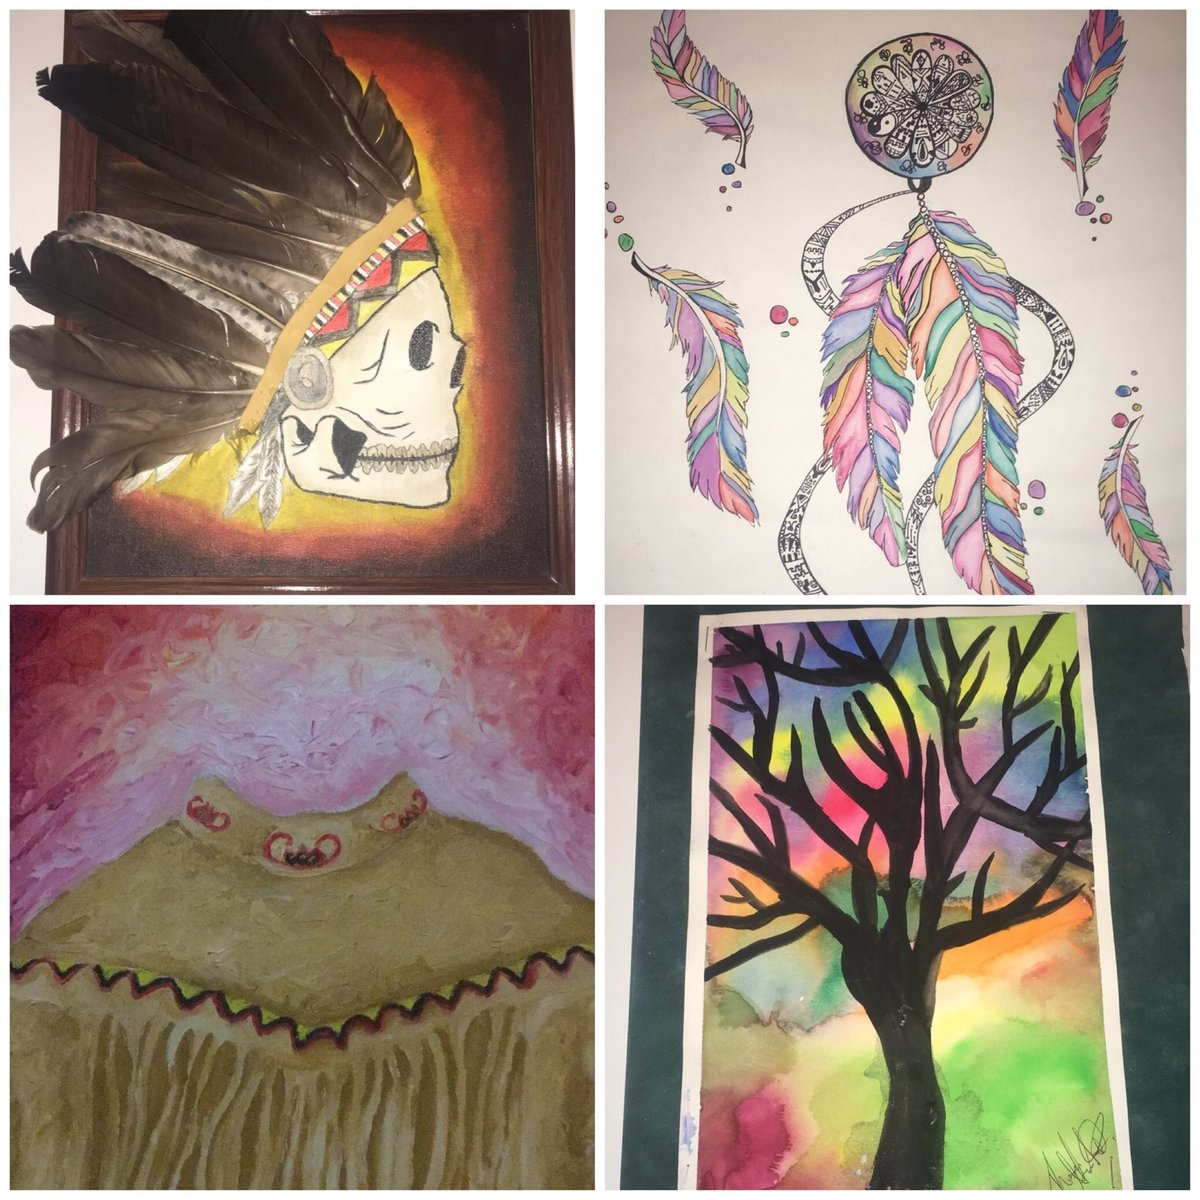 A sample of the artwork on exhibit at CBU